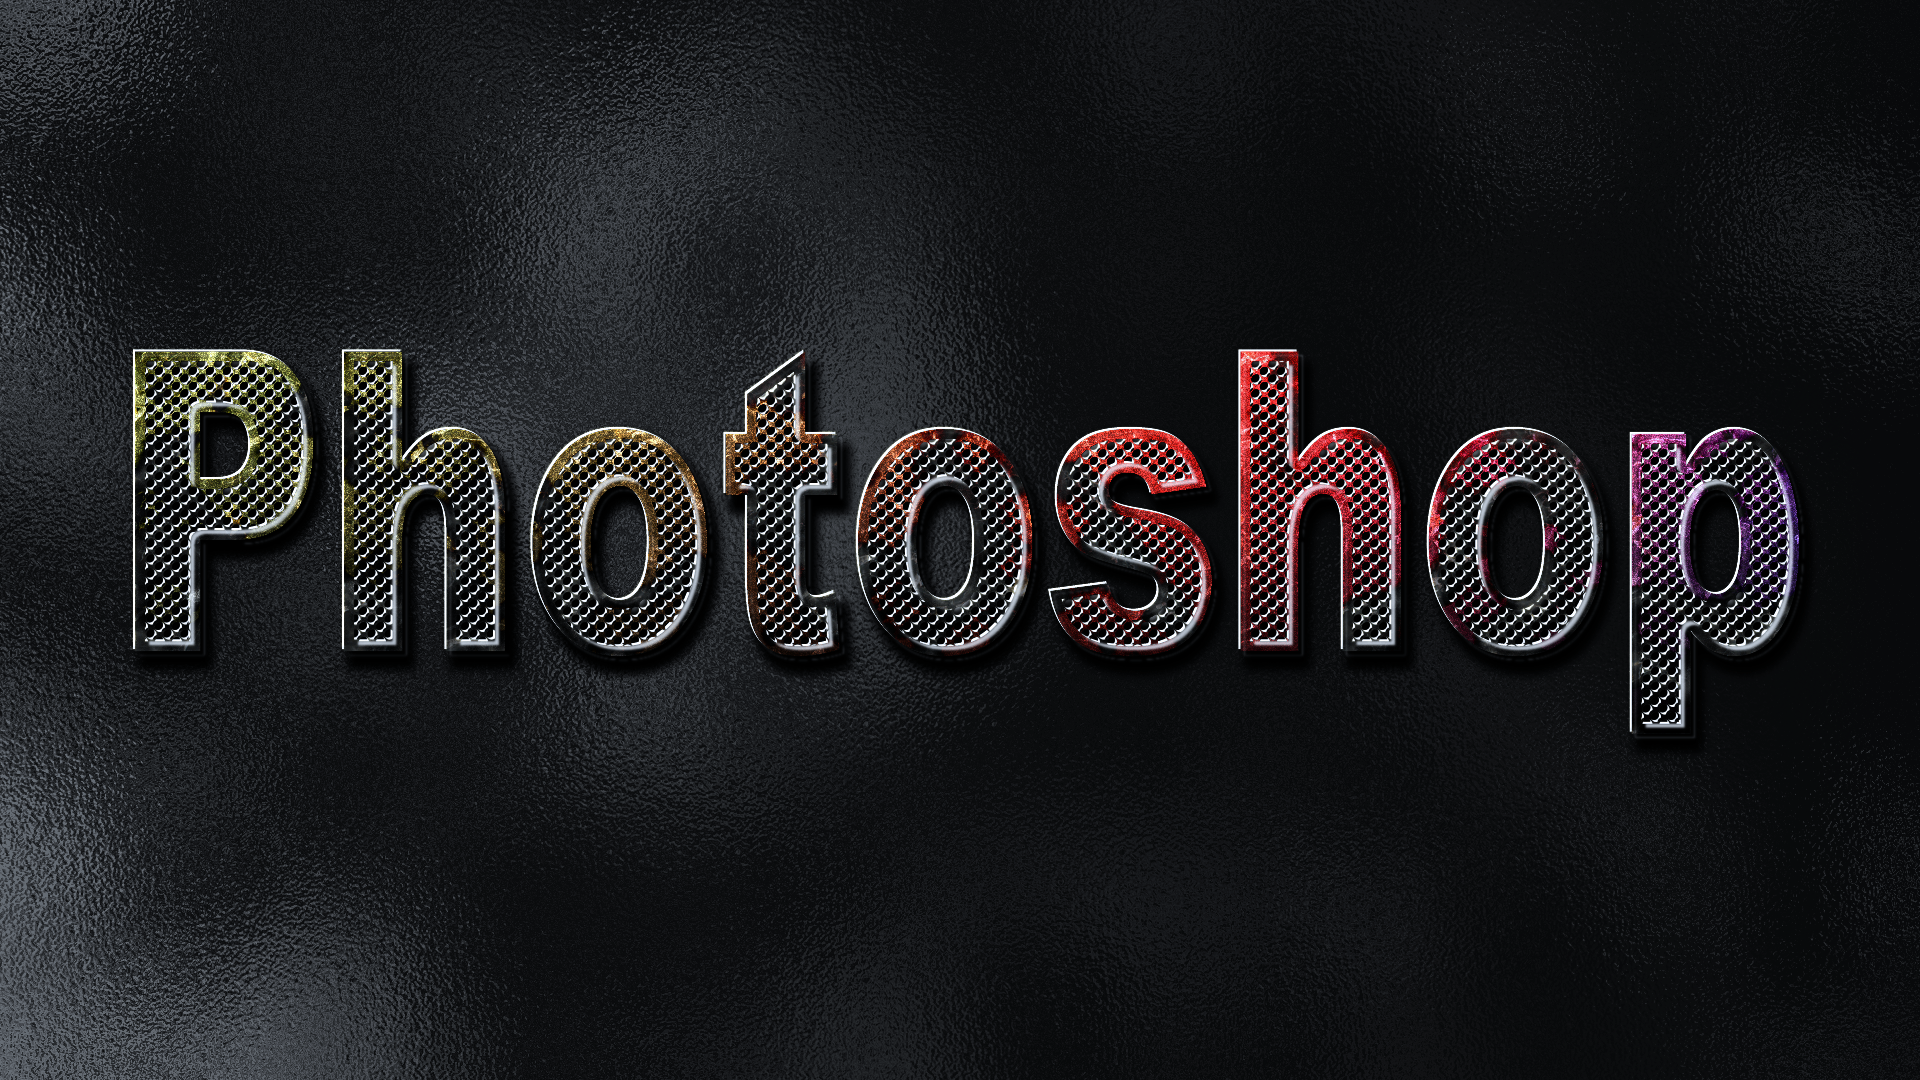 photoshop wallpaper images pictures - photo #15